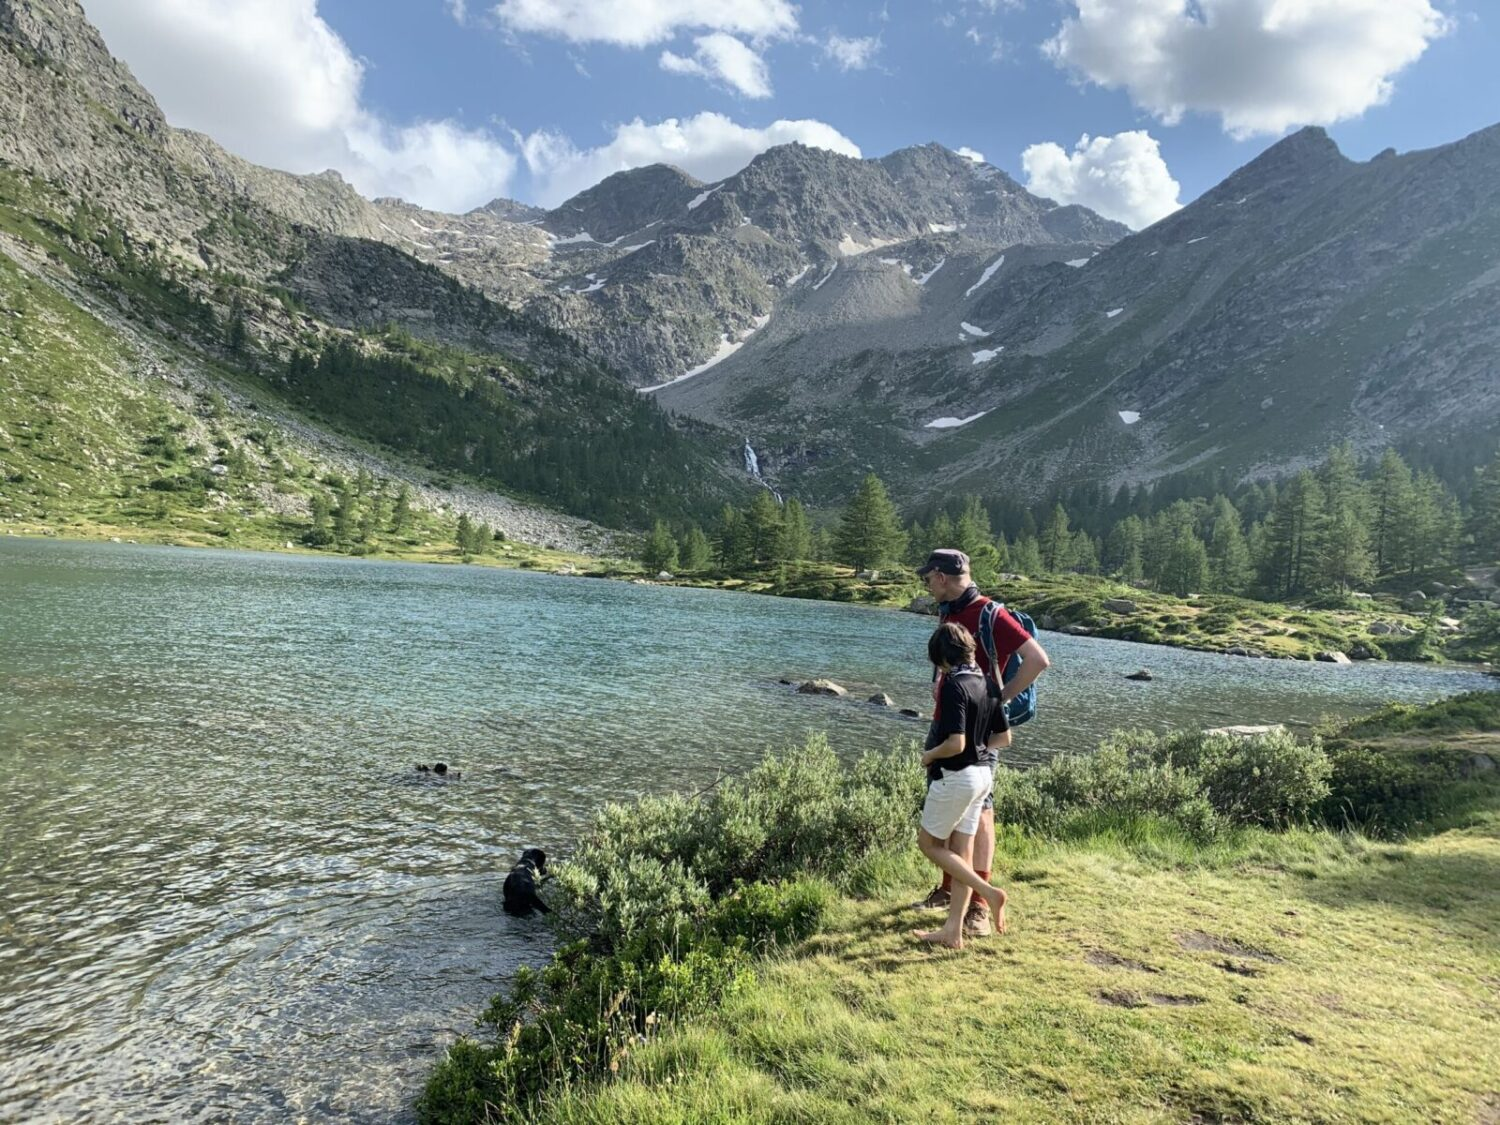 We finally arrived at Lago d'Arpy. Photo: The-Ski-Guru. Family trek to Lago d' Arpy, Morgex, AO.